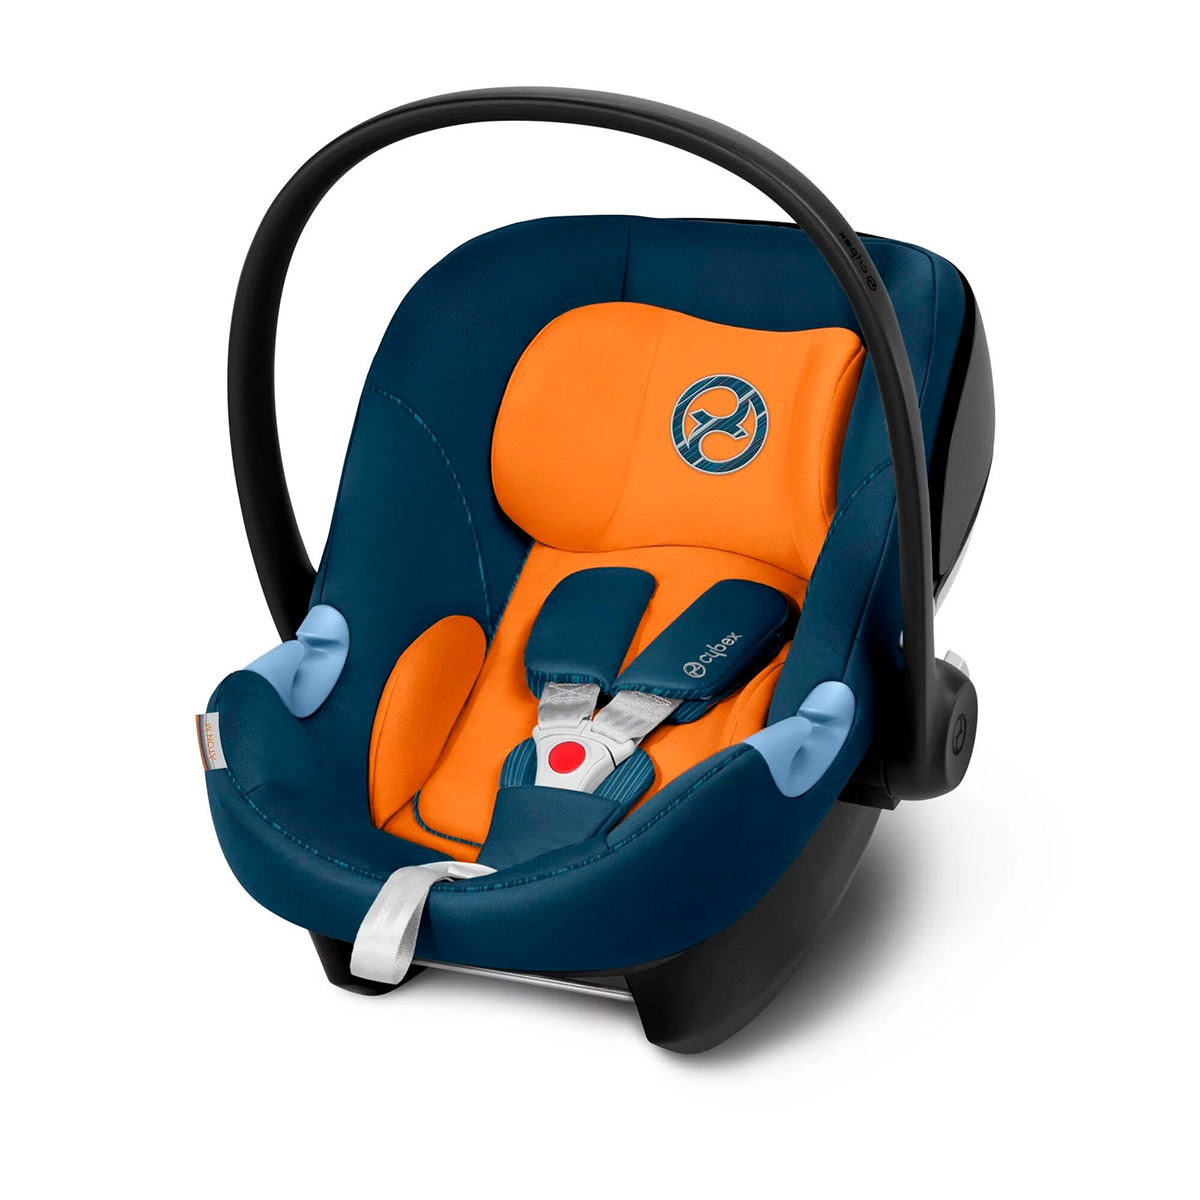 Cybex Aton M i-Size Автокресло Cybex Aton M i-Size Tropical Blue atom-m-i-size-tropical-blue.jpg